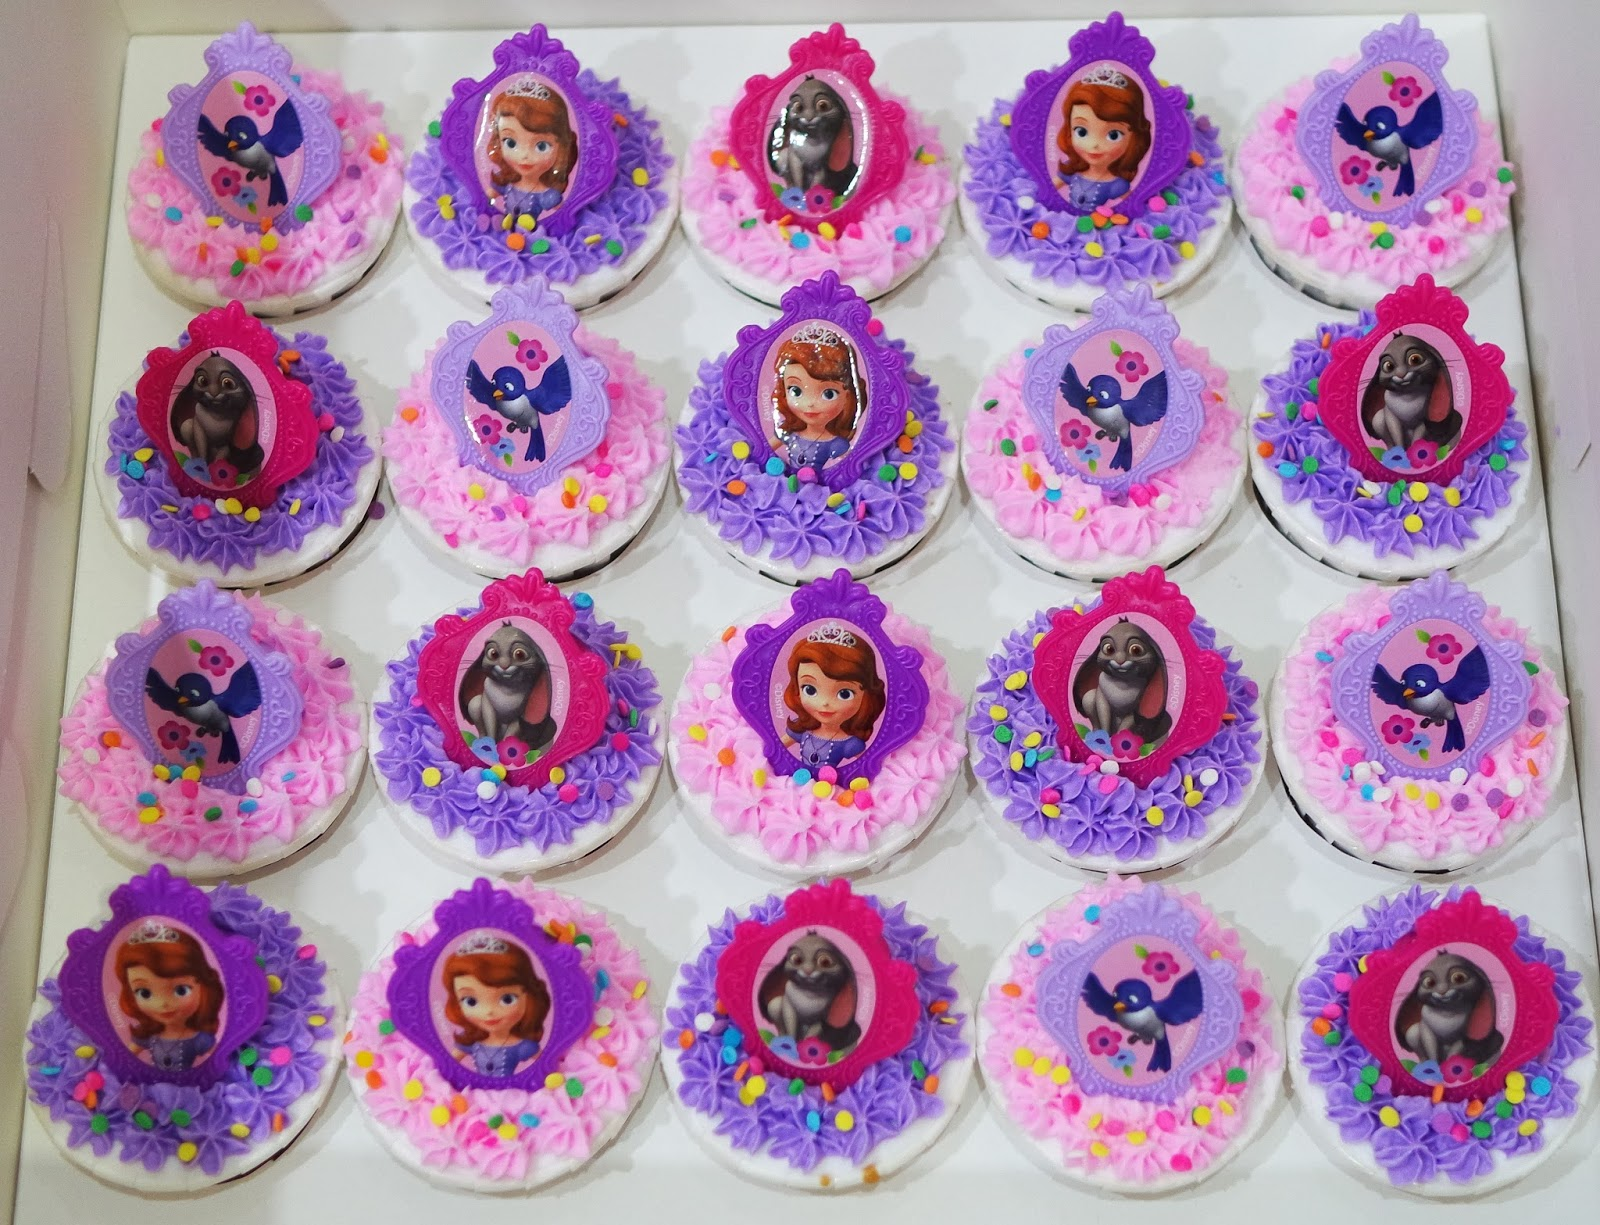 Cupcake Divinity: Sofia The First Cupcakes